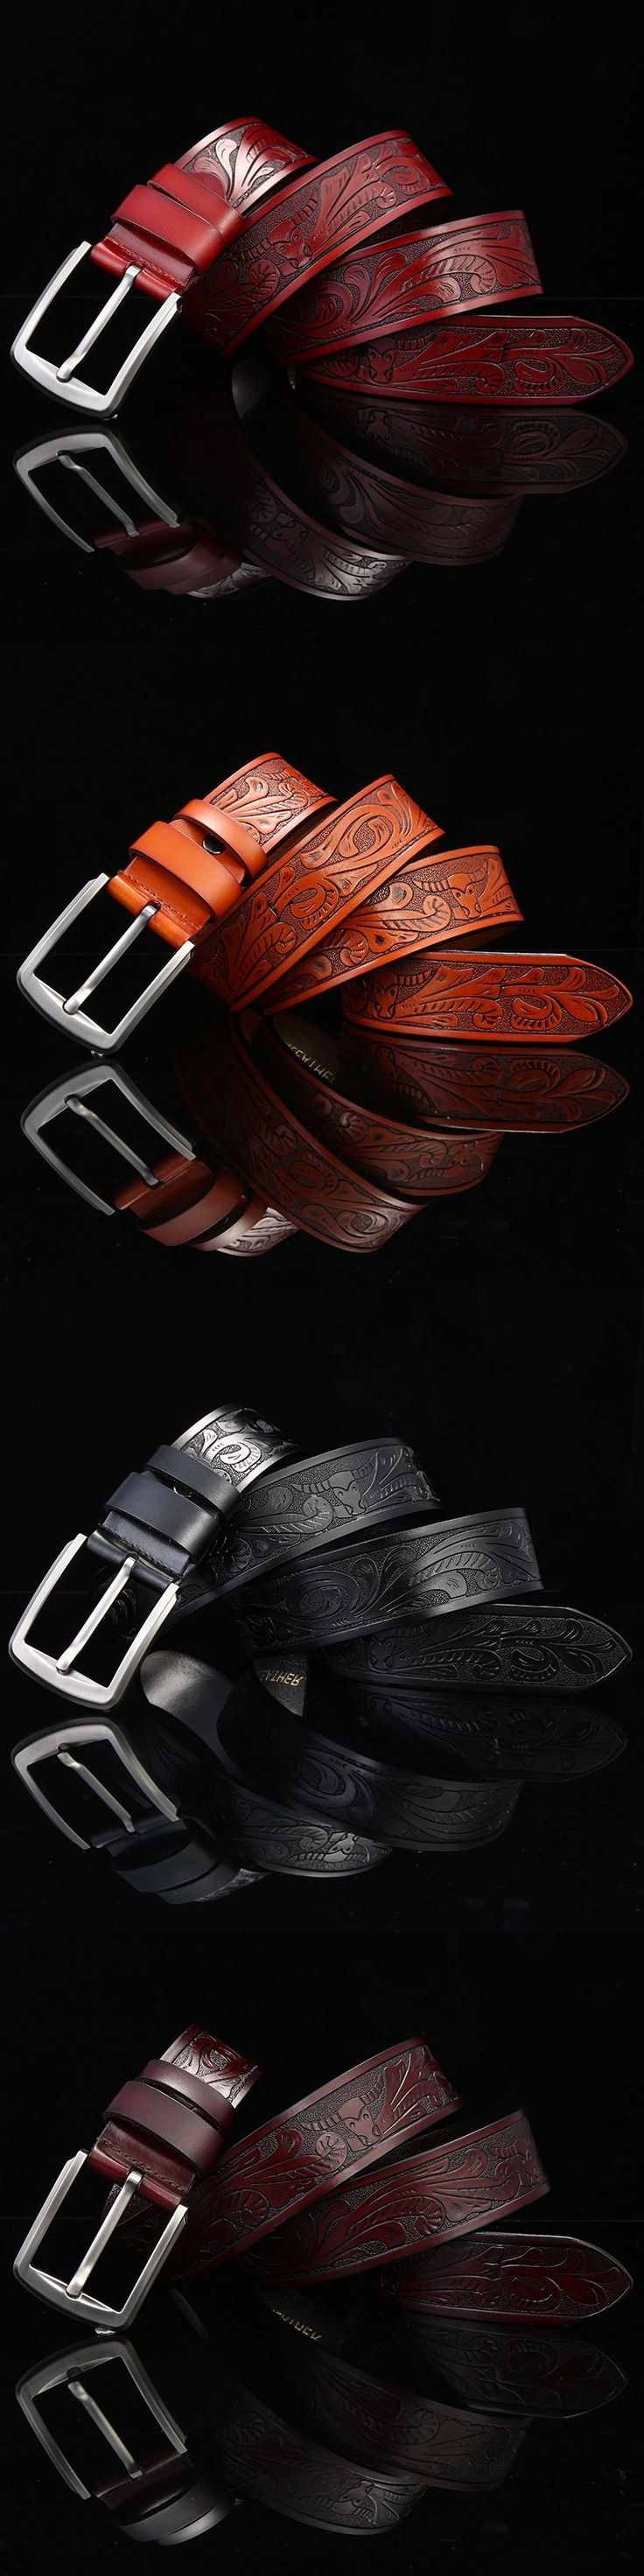 2017 Genuine Leather Men Luxury Belt for Jeans Fashion Floral Carved Strap Male Cowhide Cowboy Belts Quality Guarantee XN014